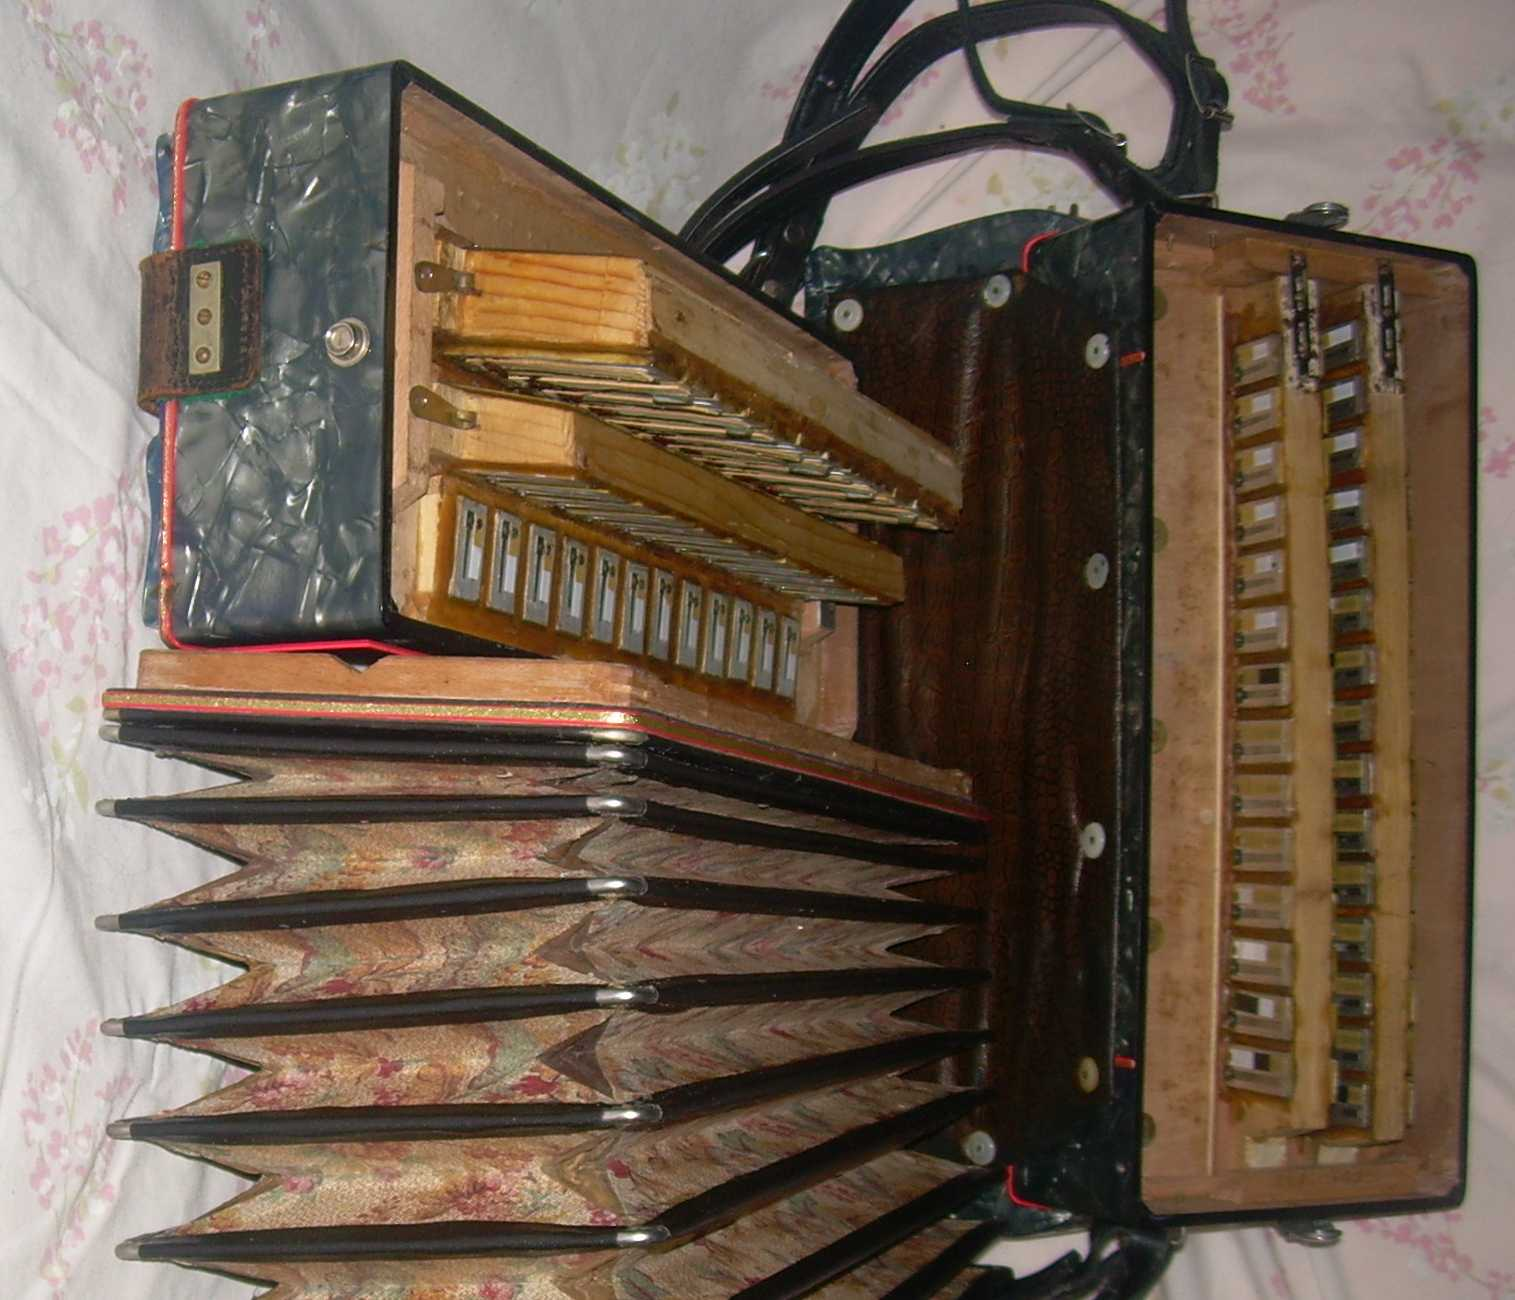 Inner workings of Michelangelo 36 bass accordion